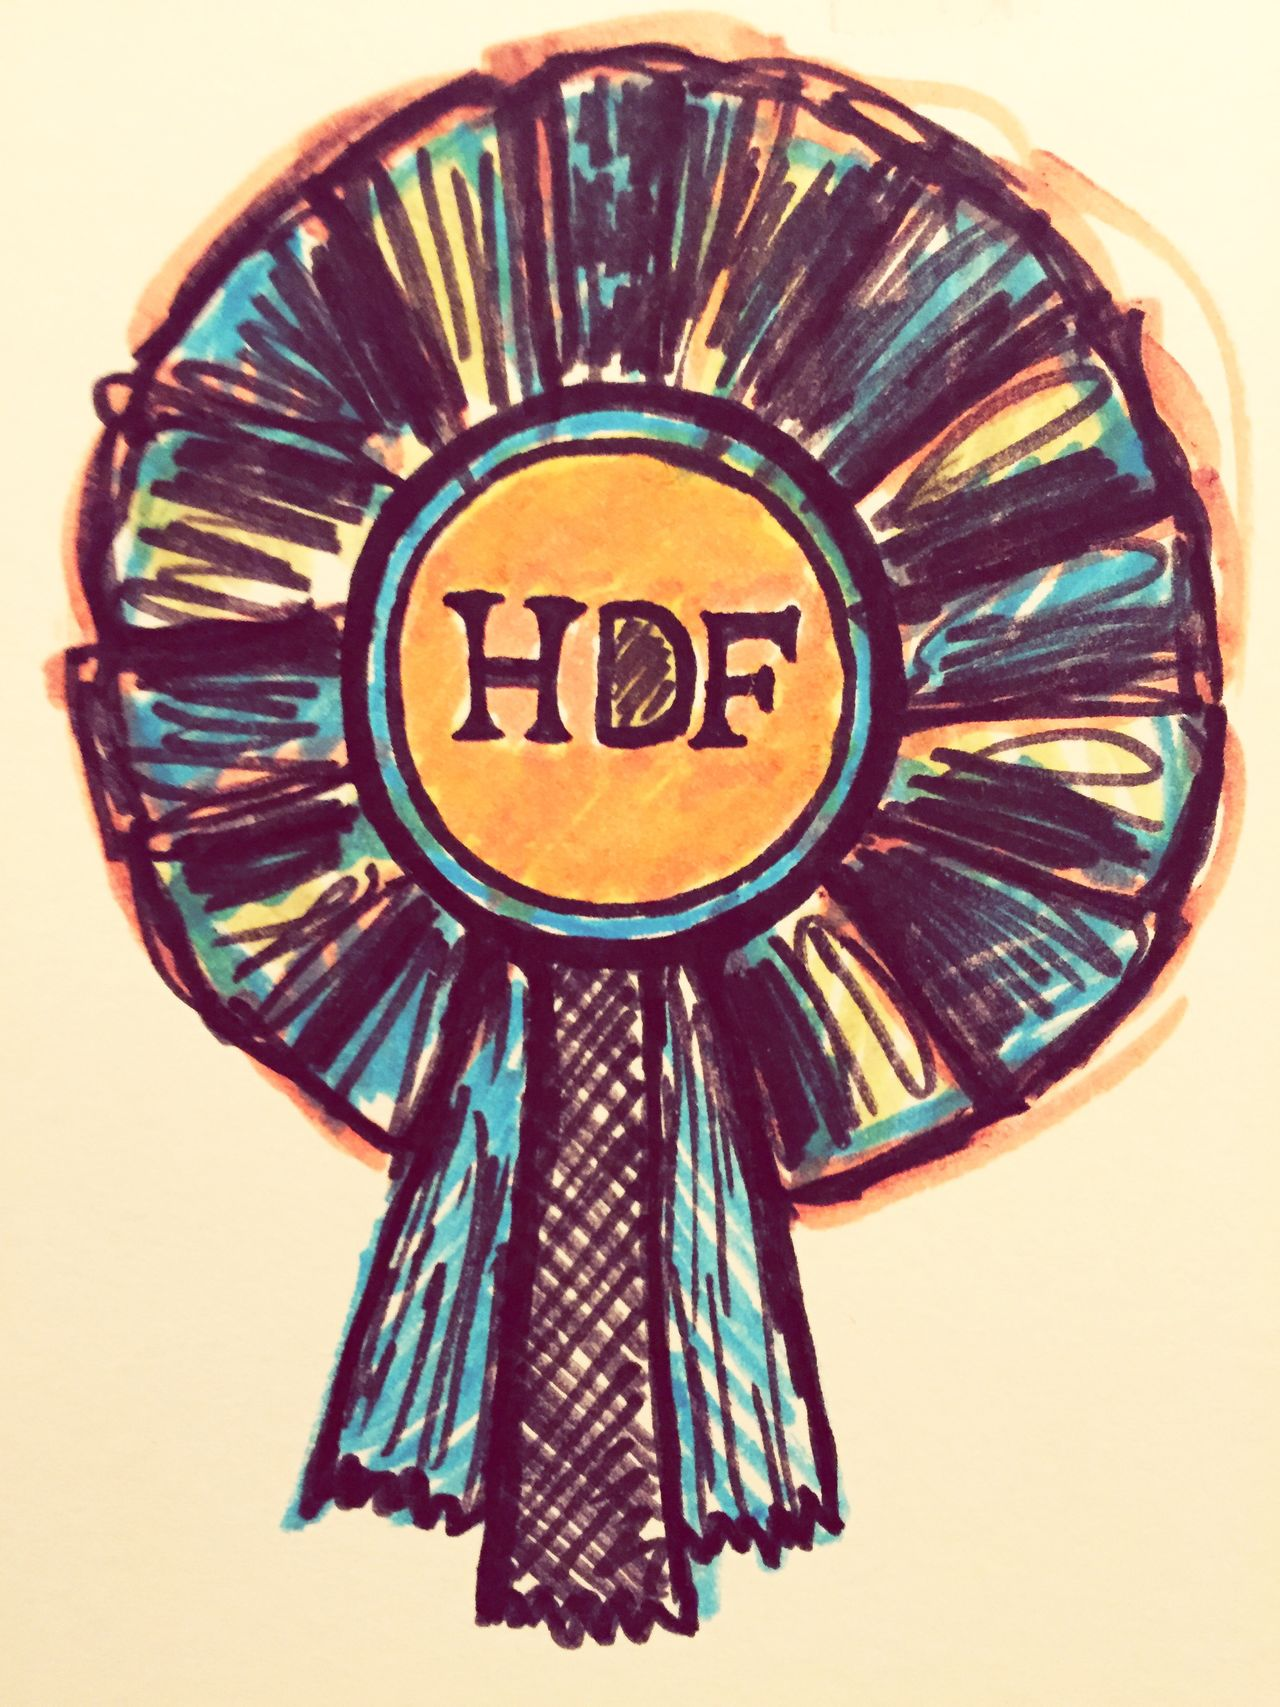 Hdf Haltdiefresse Drawing Pencil Pencil Drawing Colors Art ArtWork Badge Horse